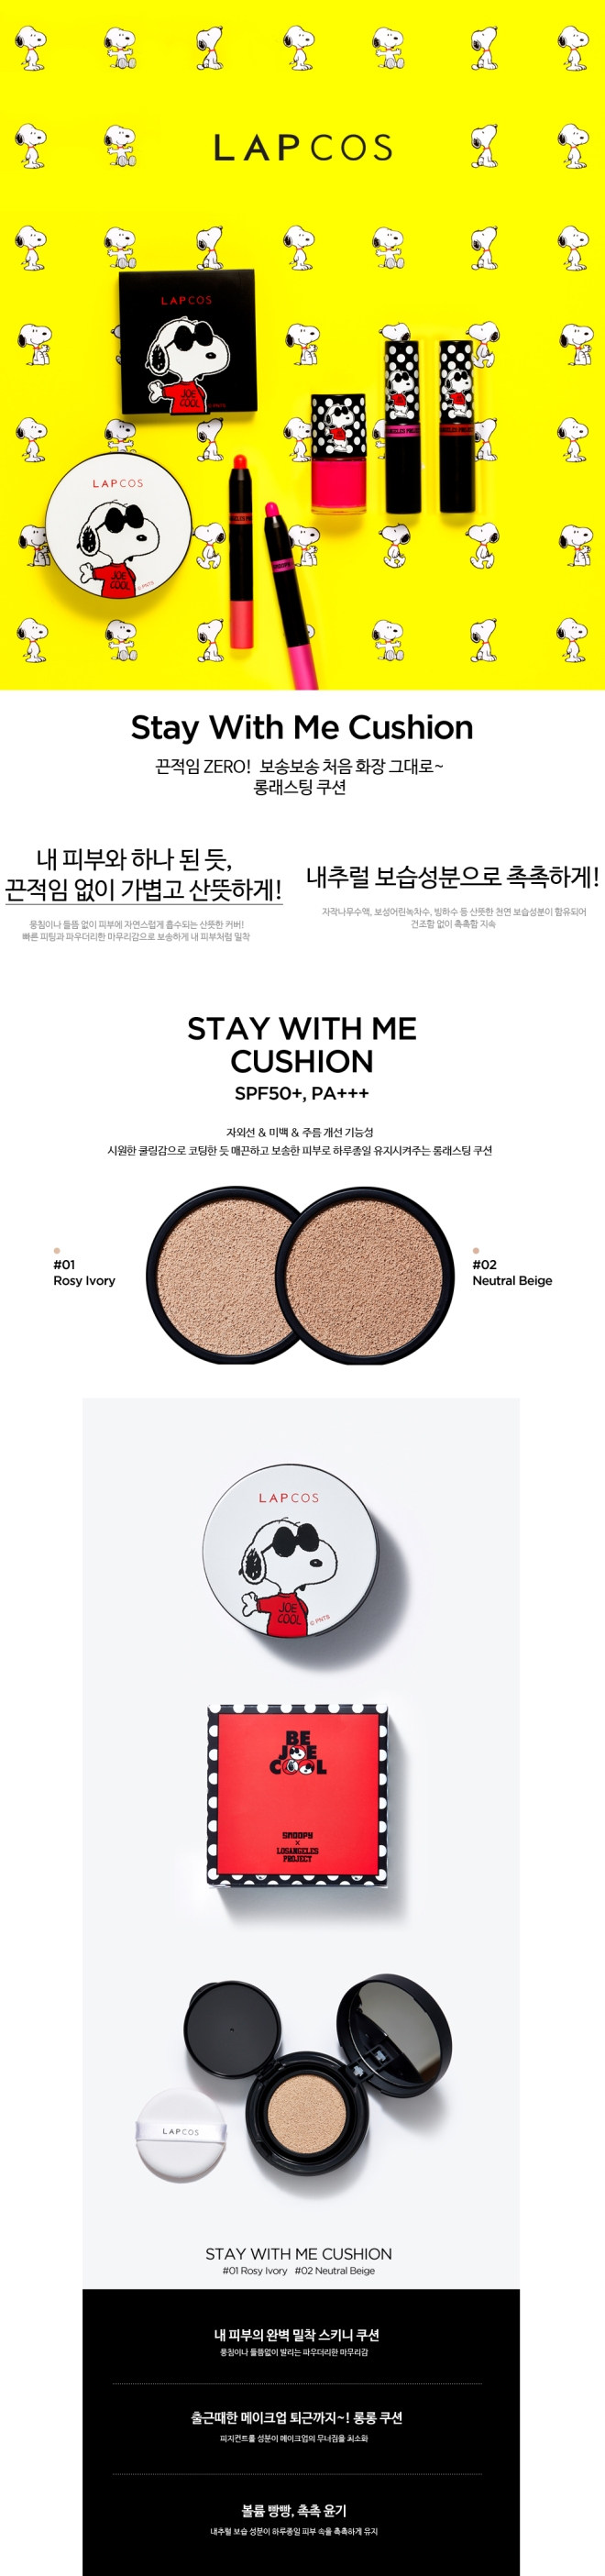 Lapcos x Snoopy Stay With Me Cushion SPF50+ PA+++ (Korean info)